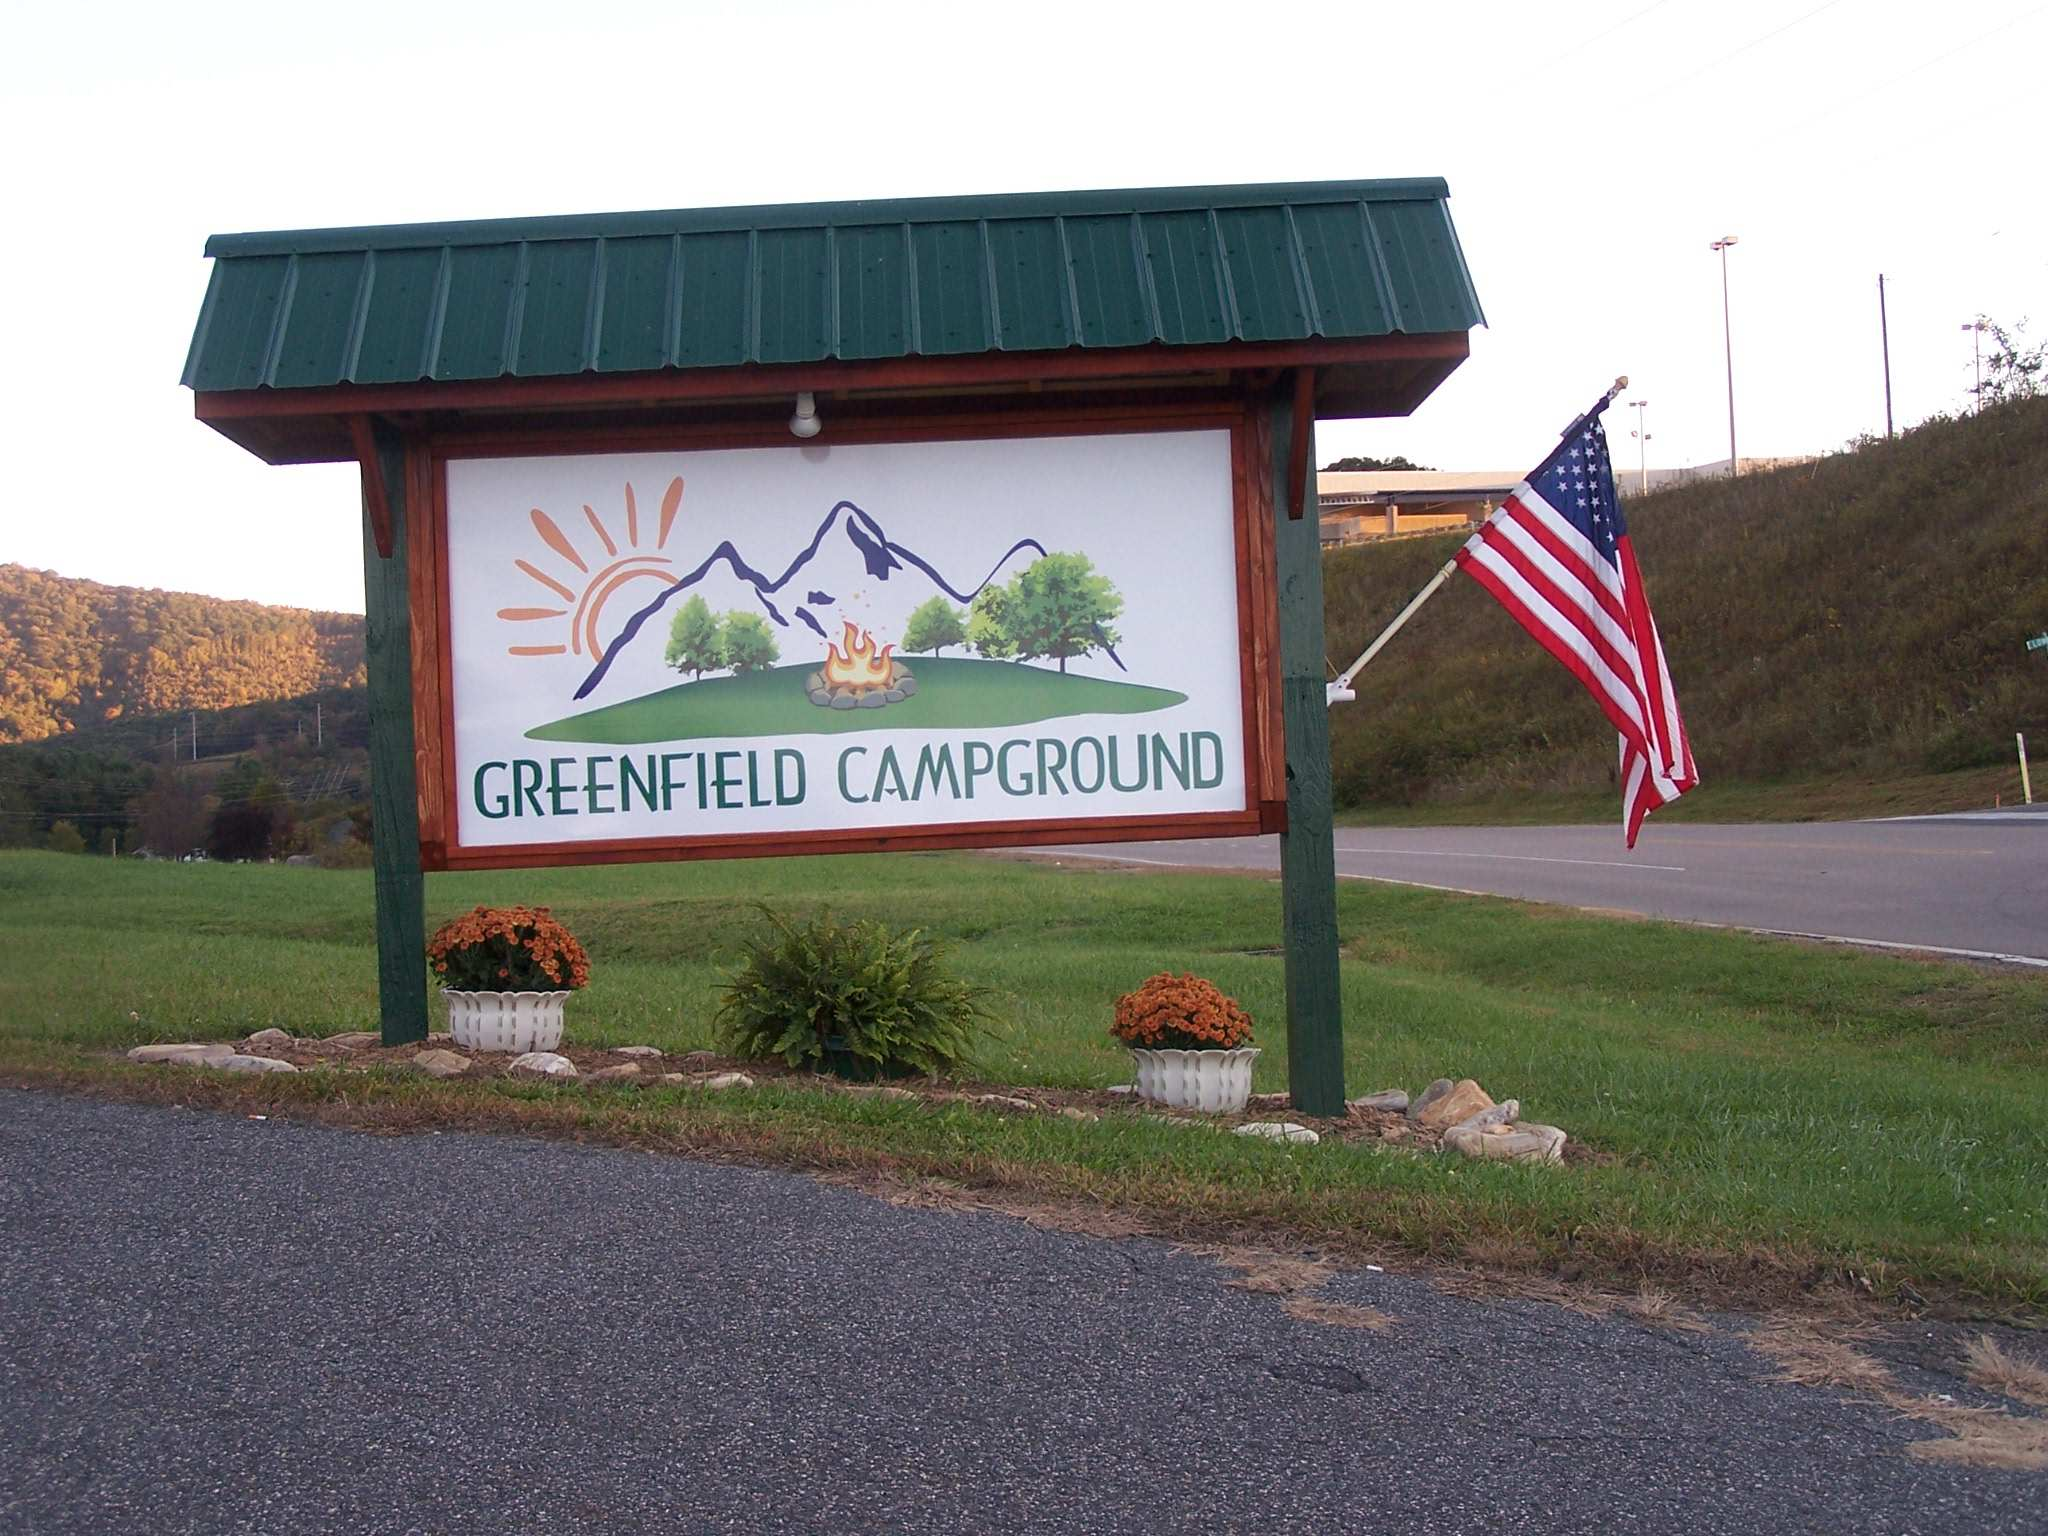 Greenfield Campground logo